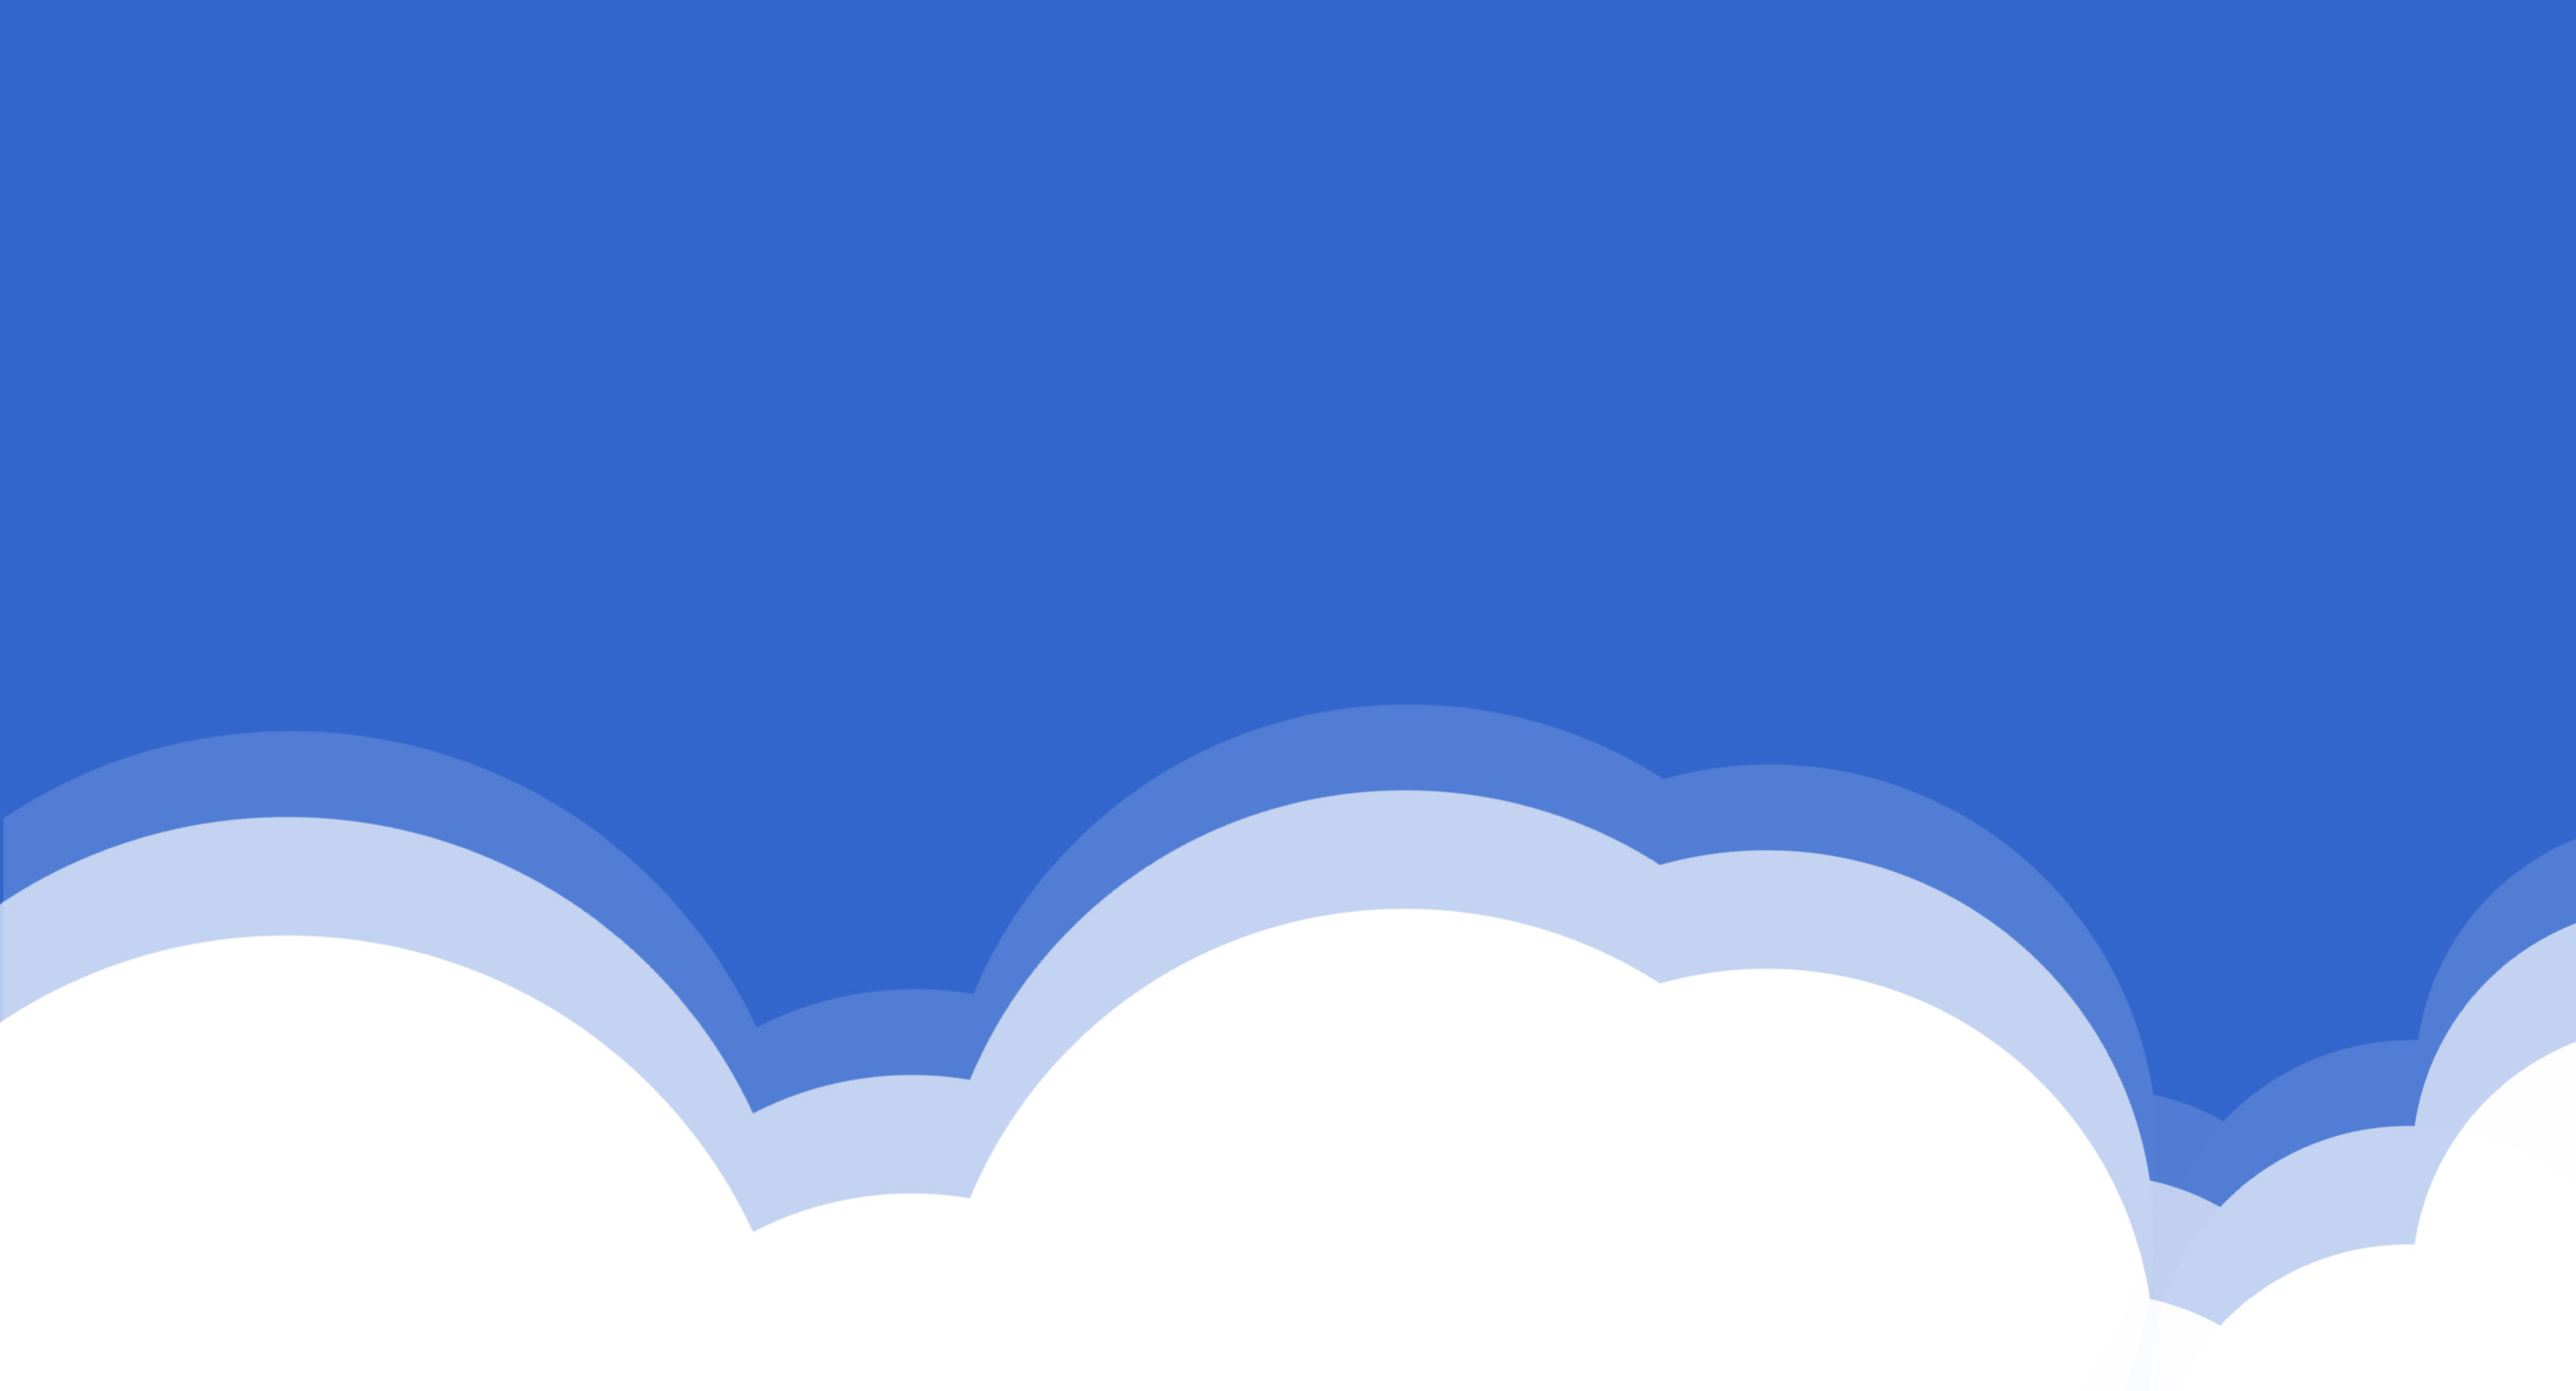 Drawn clouds simple Stratus Related Keywords Art &